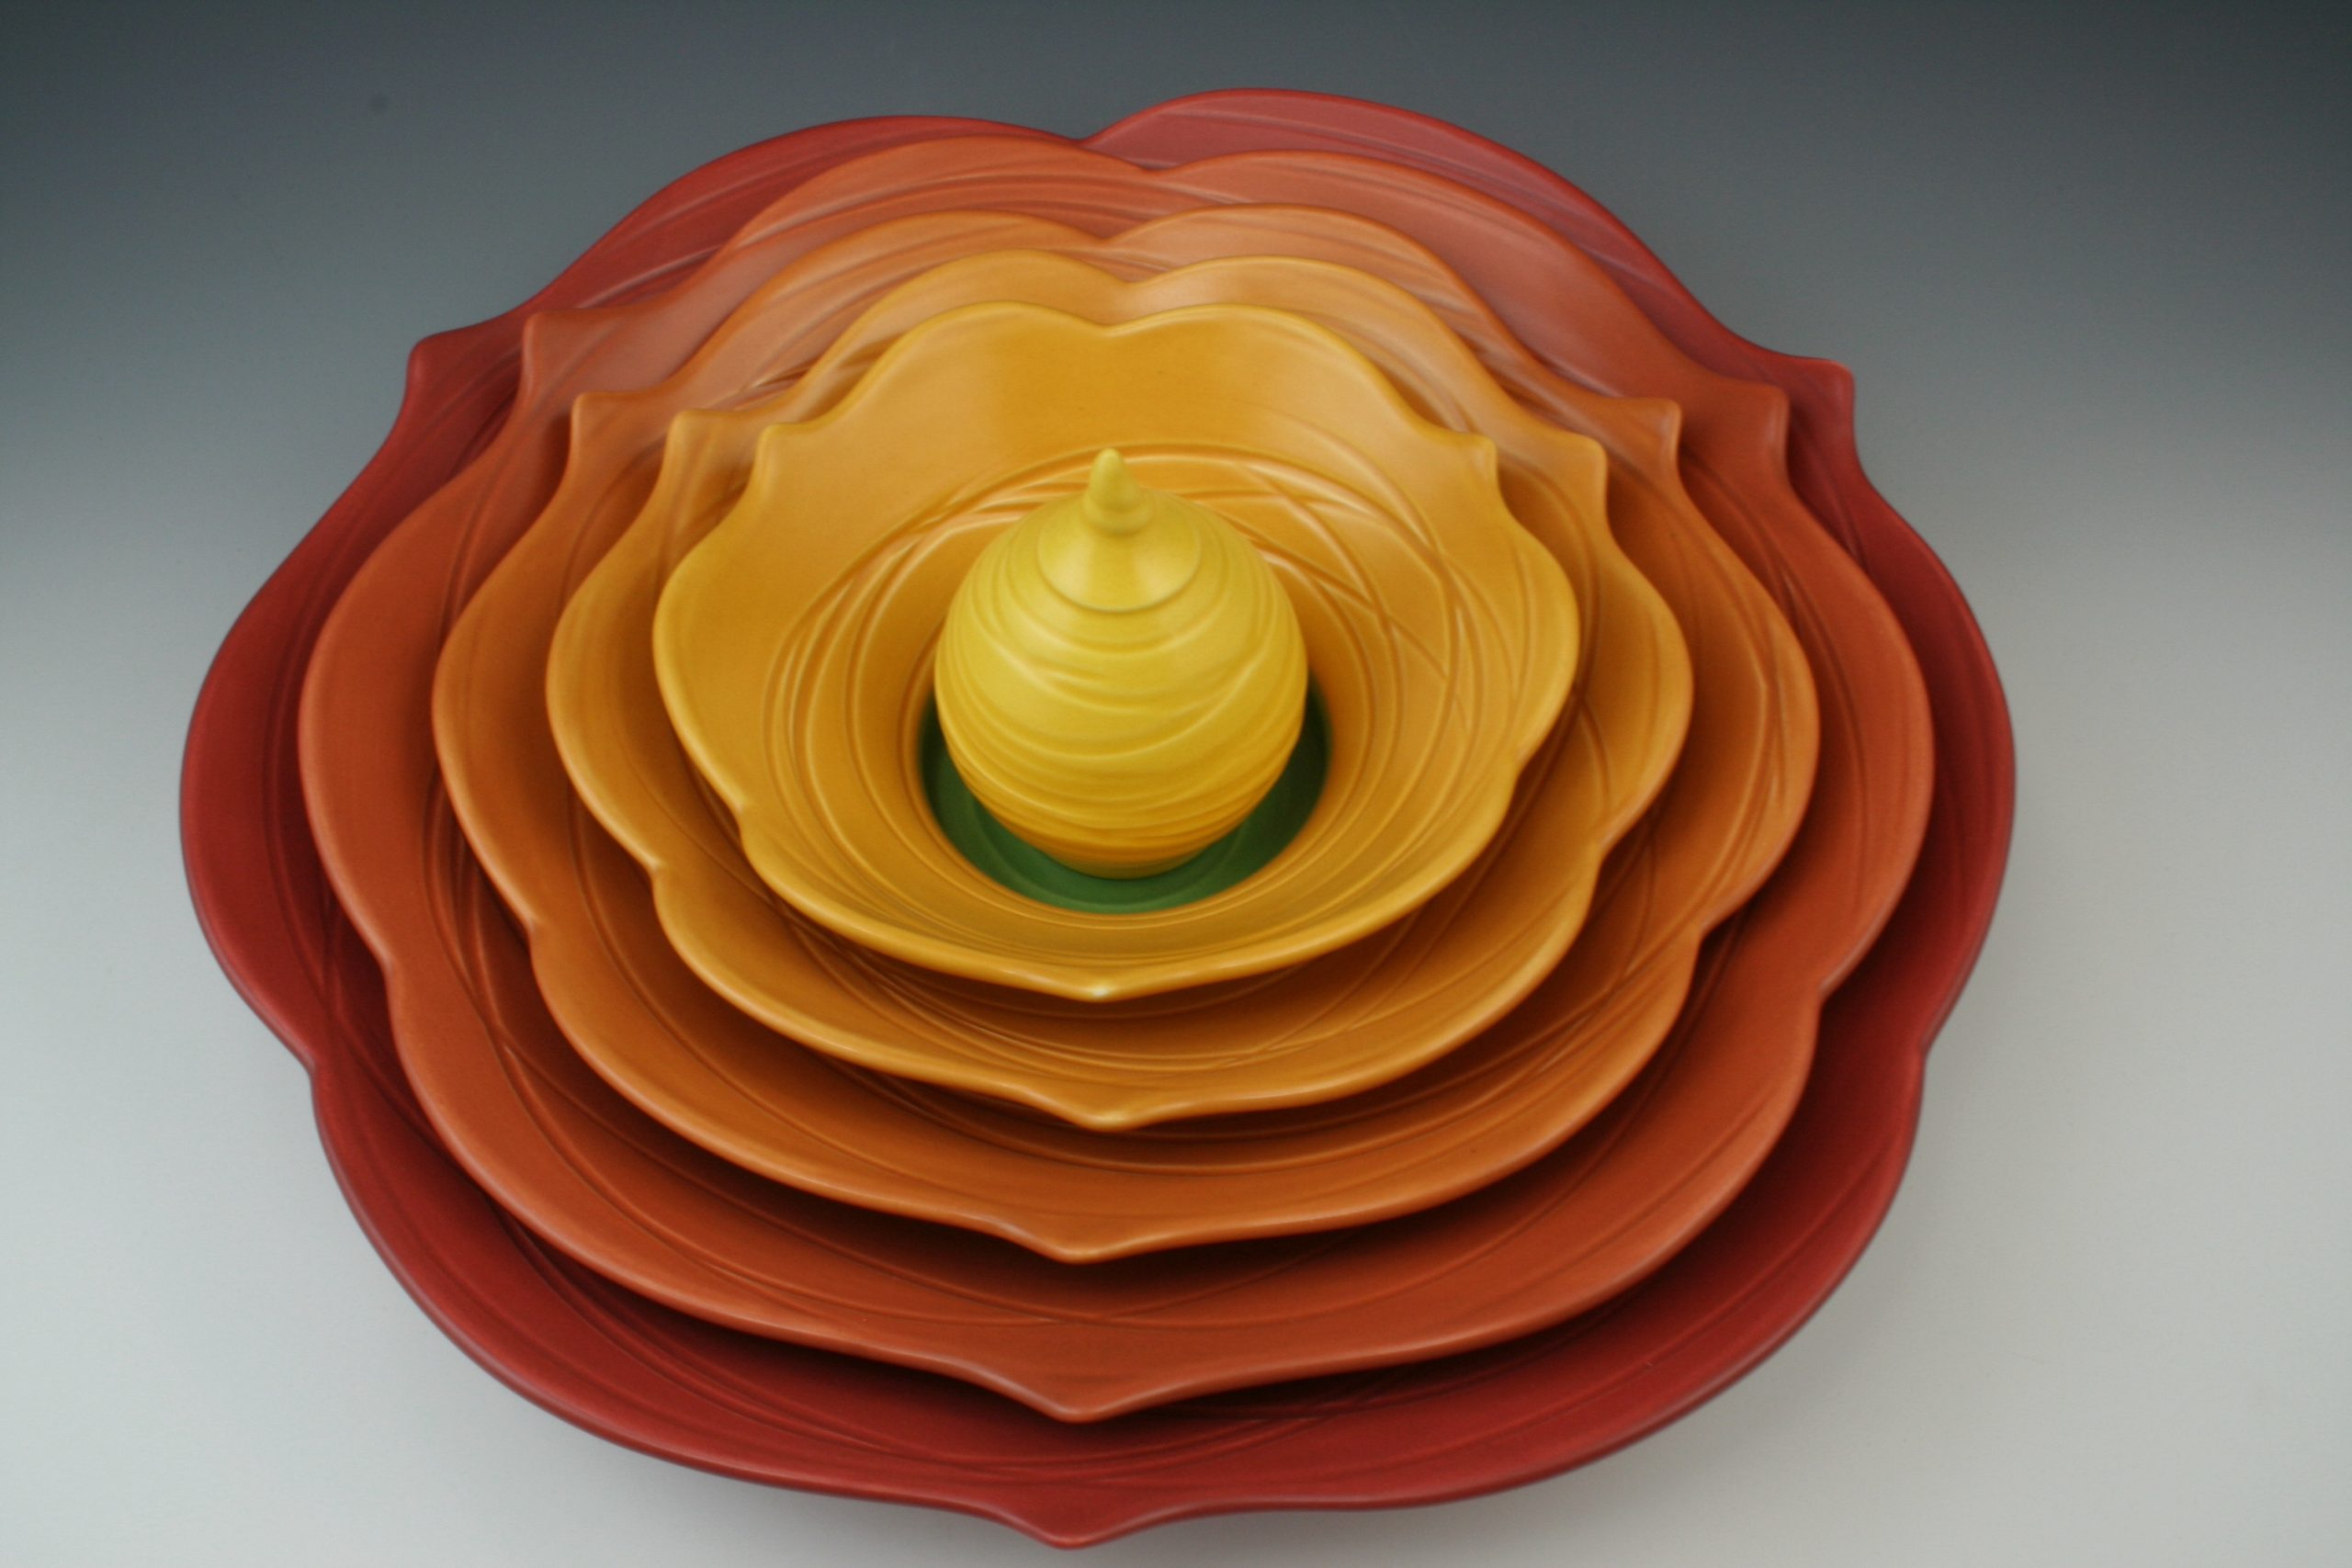 6 part thrown and altered orange and red functional ceramic centerpiece